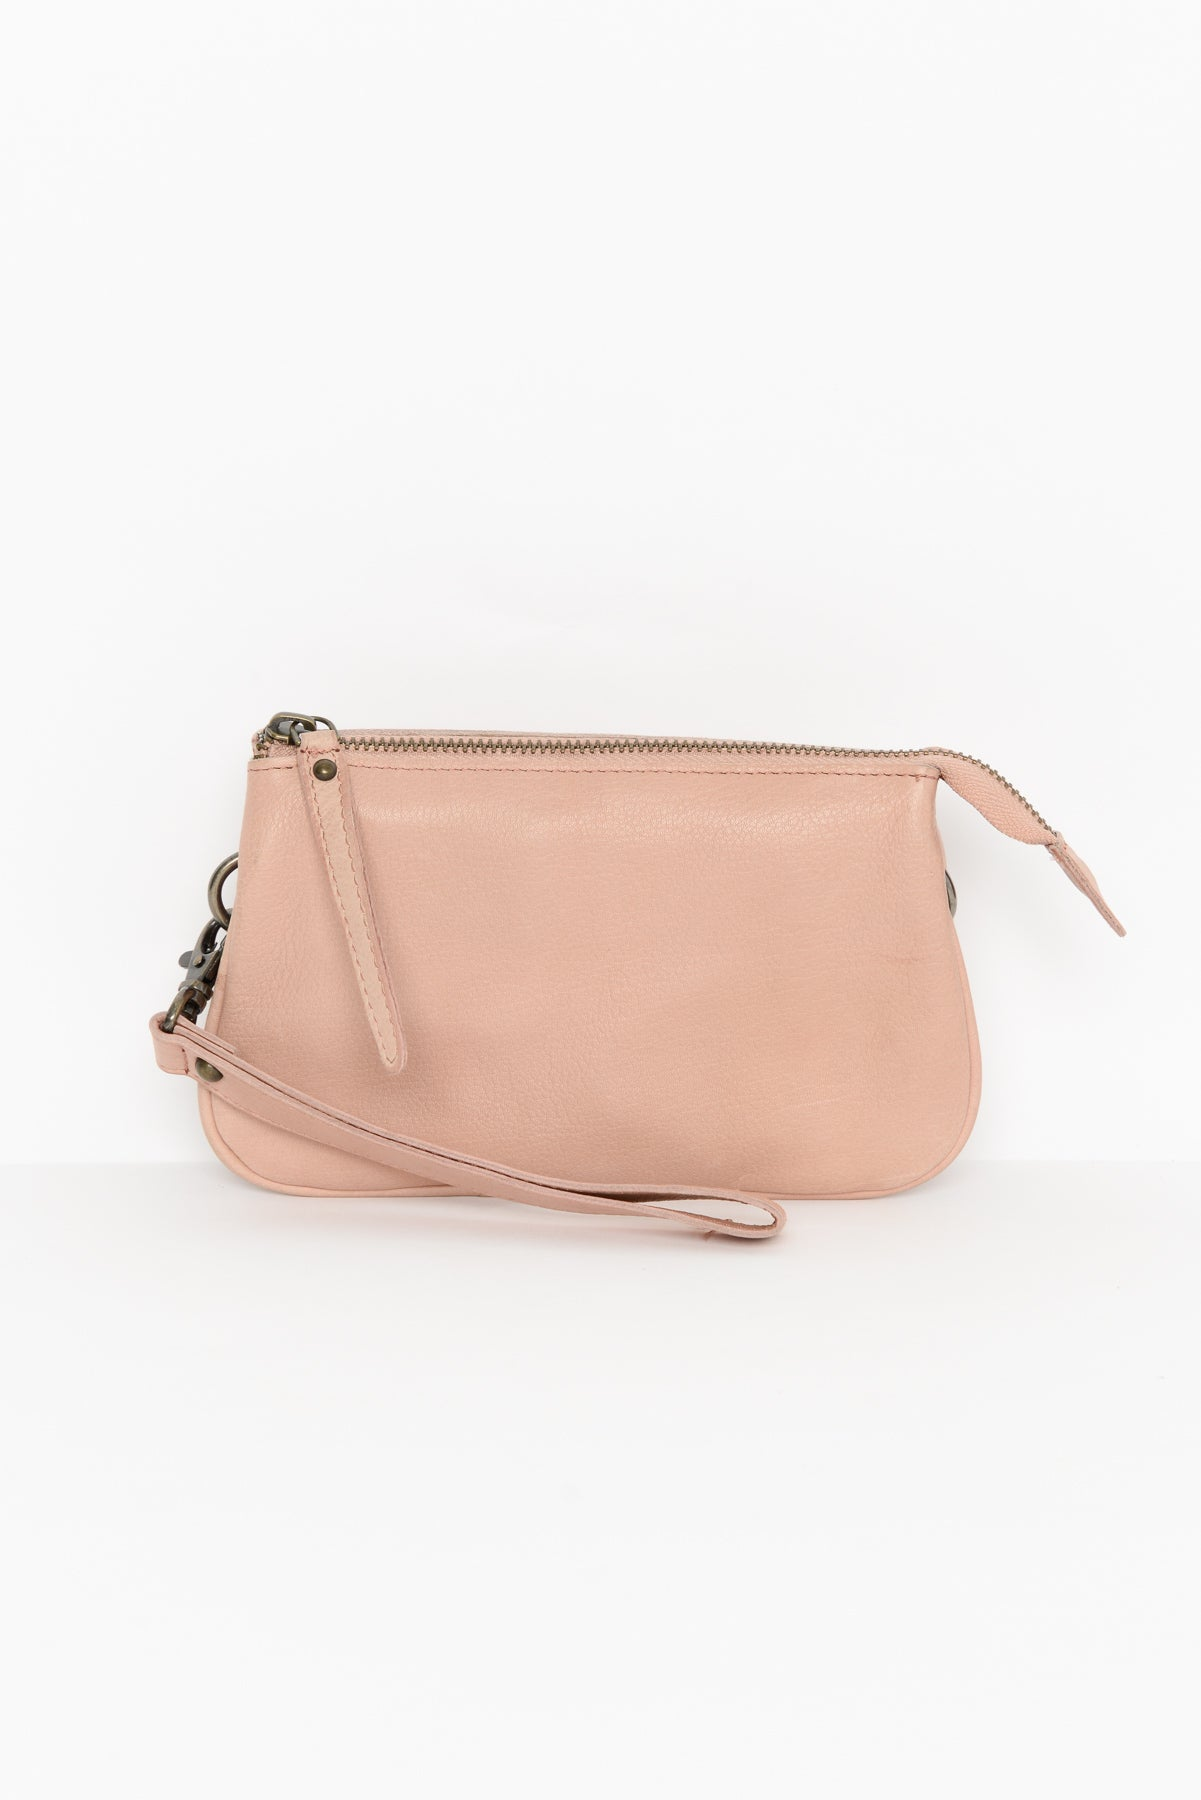 Kilda Blush Leather Sling Bag